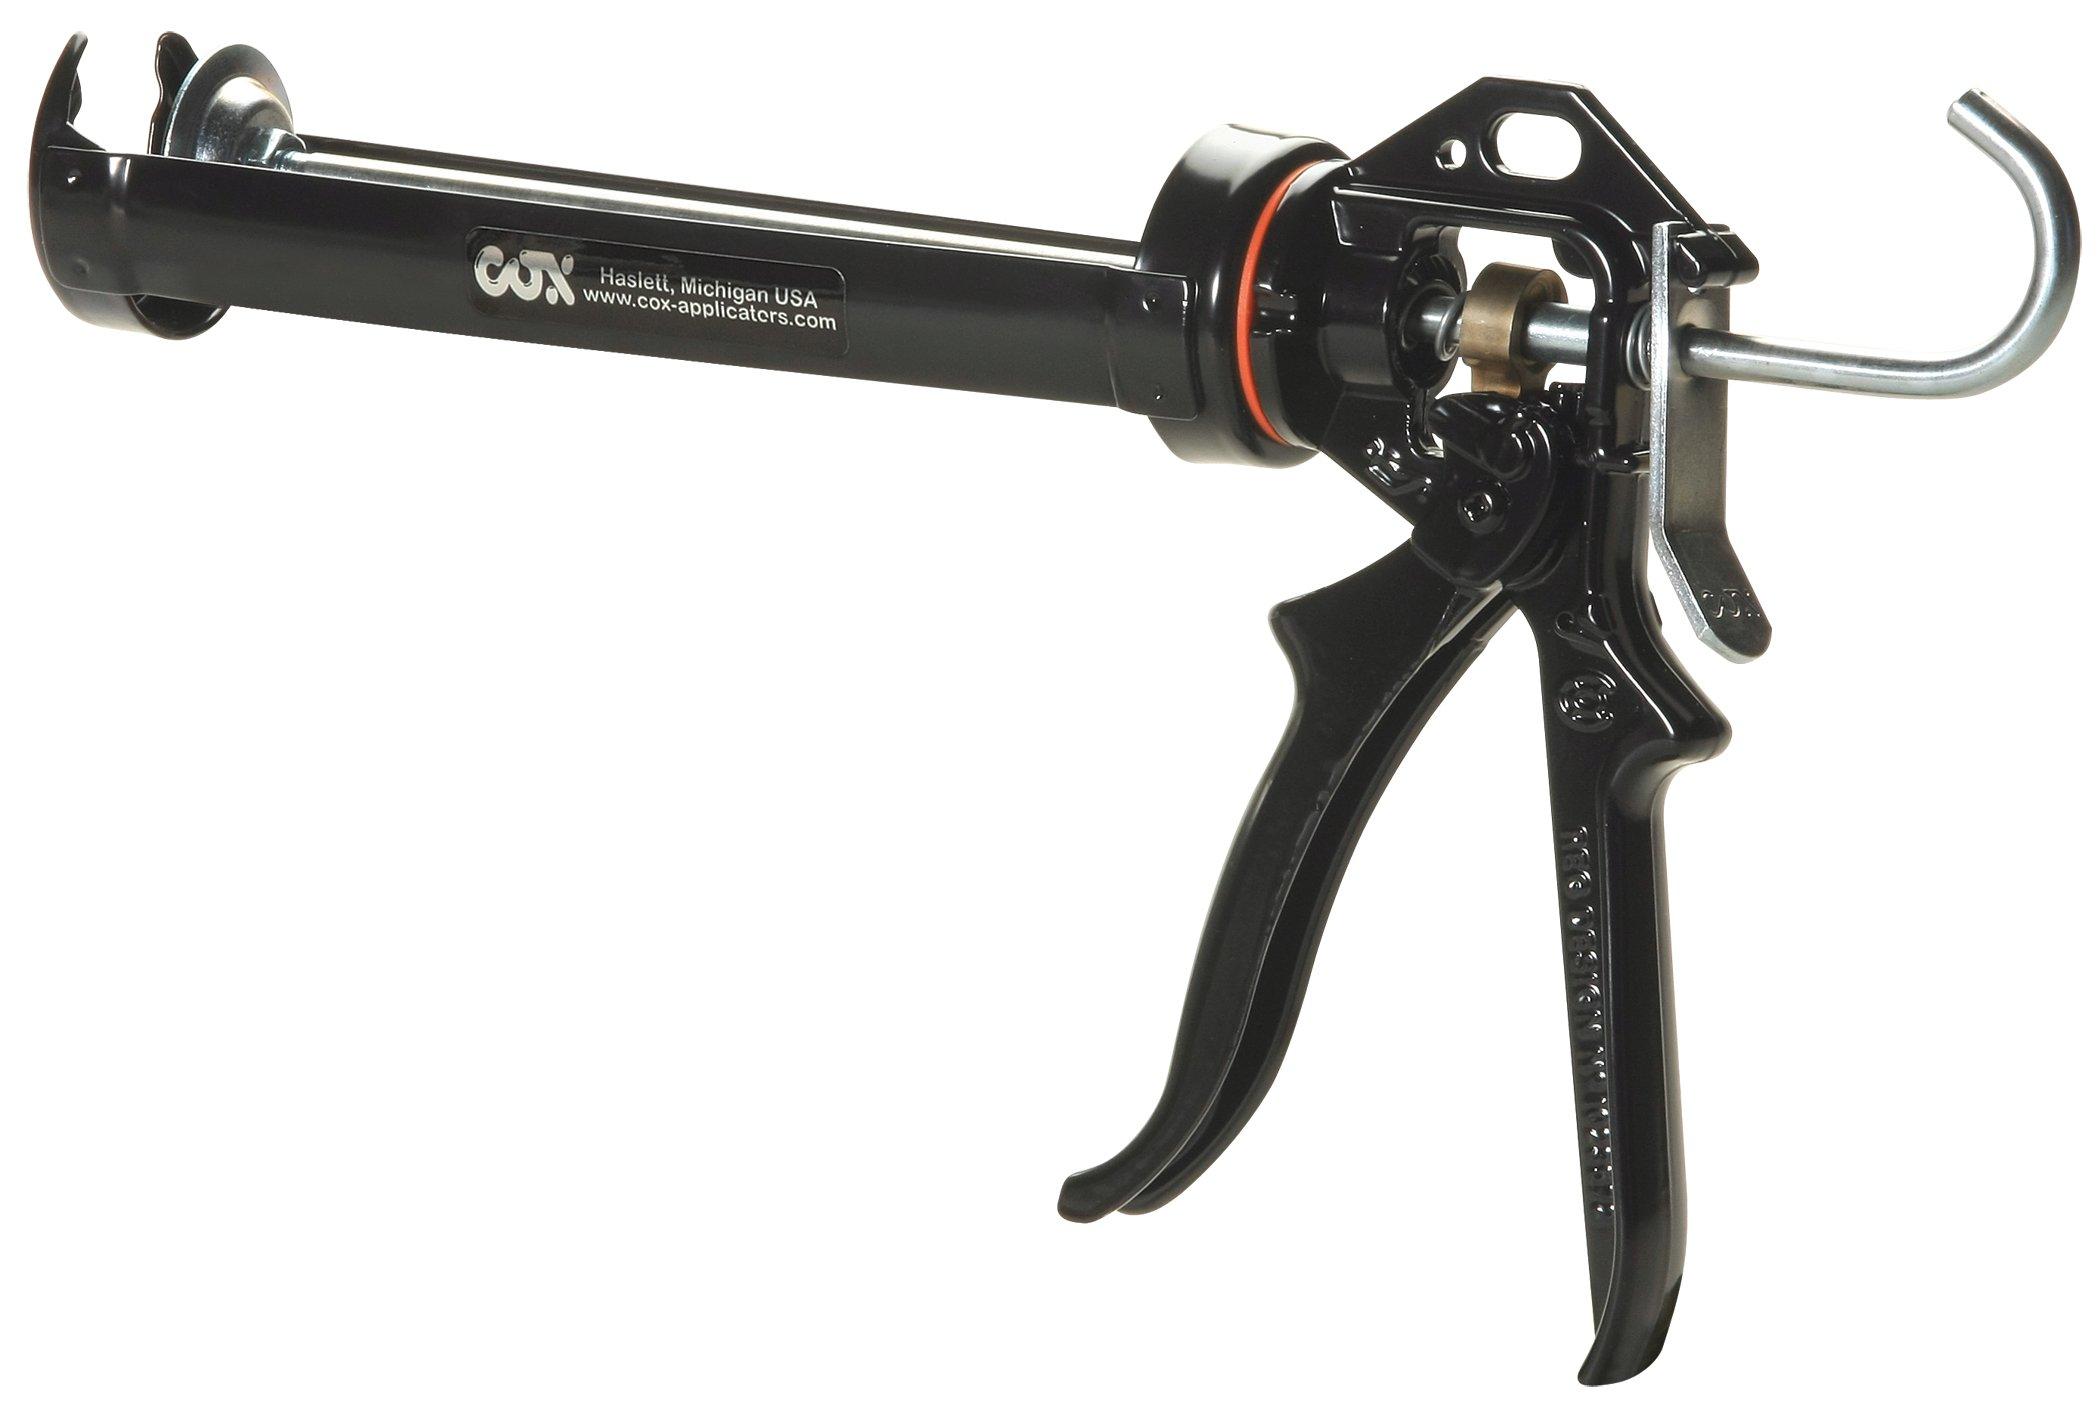 COX 41004-XT Chilton Extra Thrust 10.3-Ounce Cartridge Cradle Manual Caulk Gun